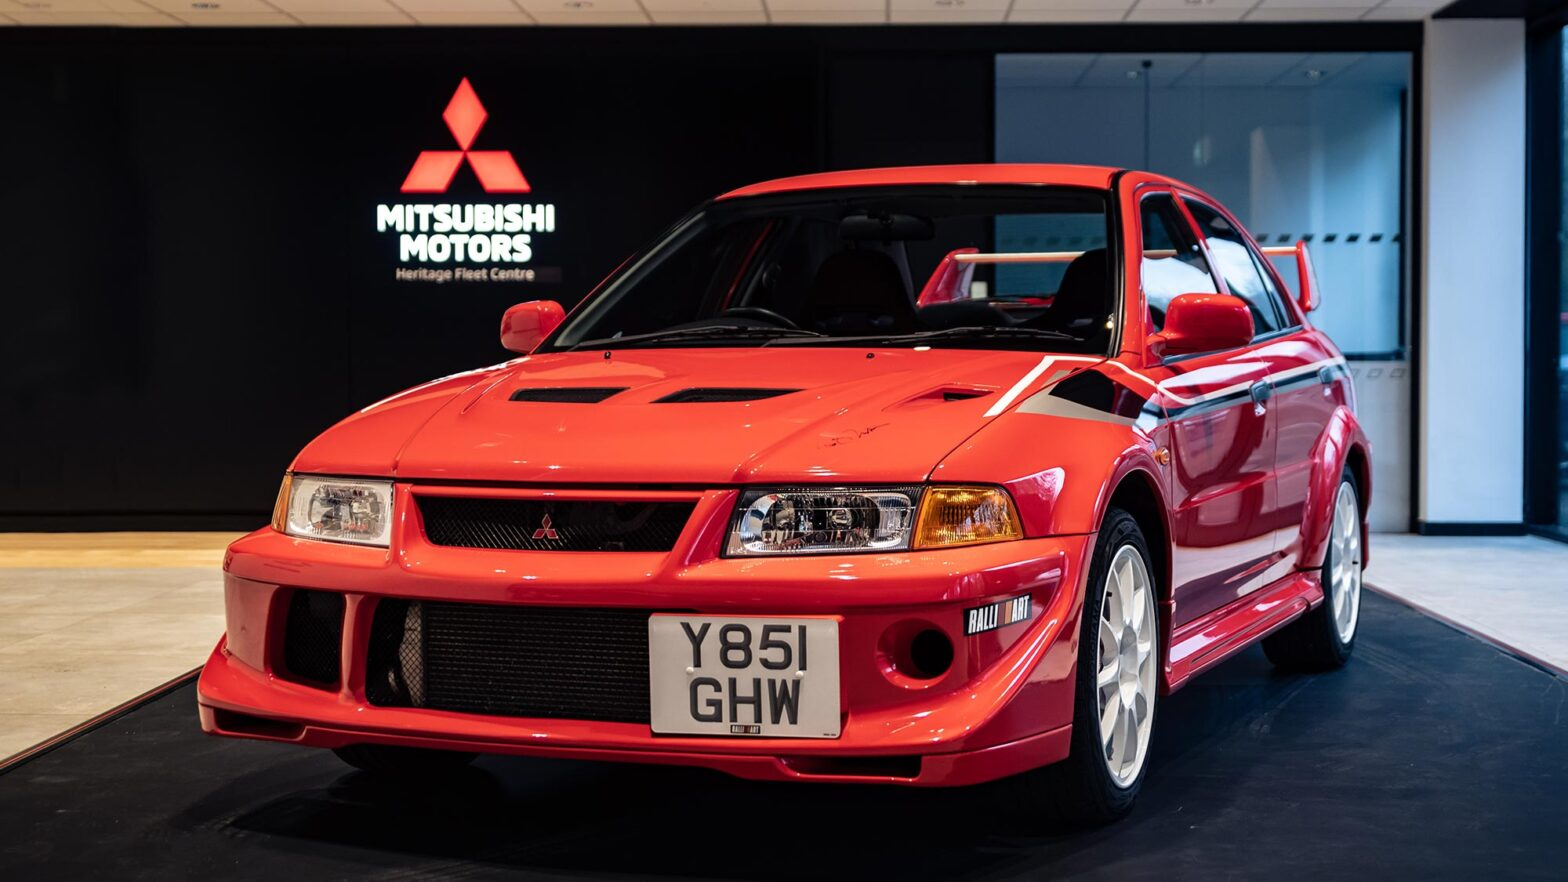 Mitsubishi Motors UK Heritage Fleet Auction